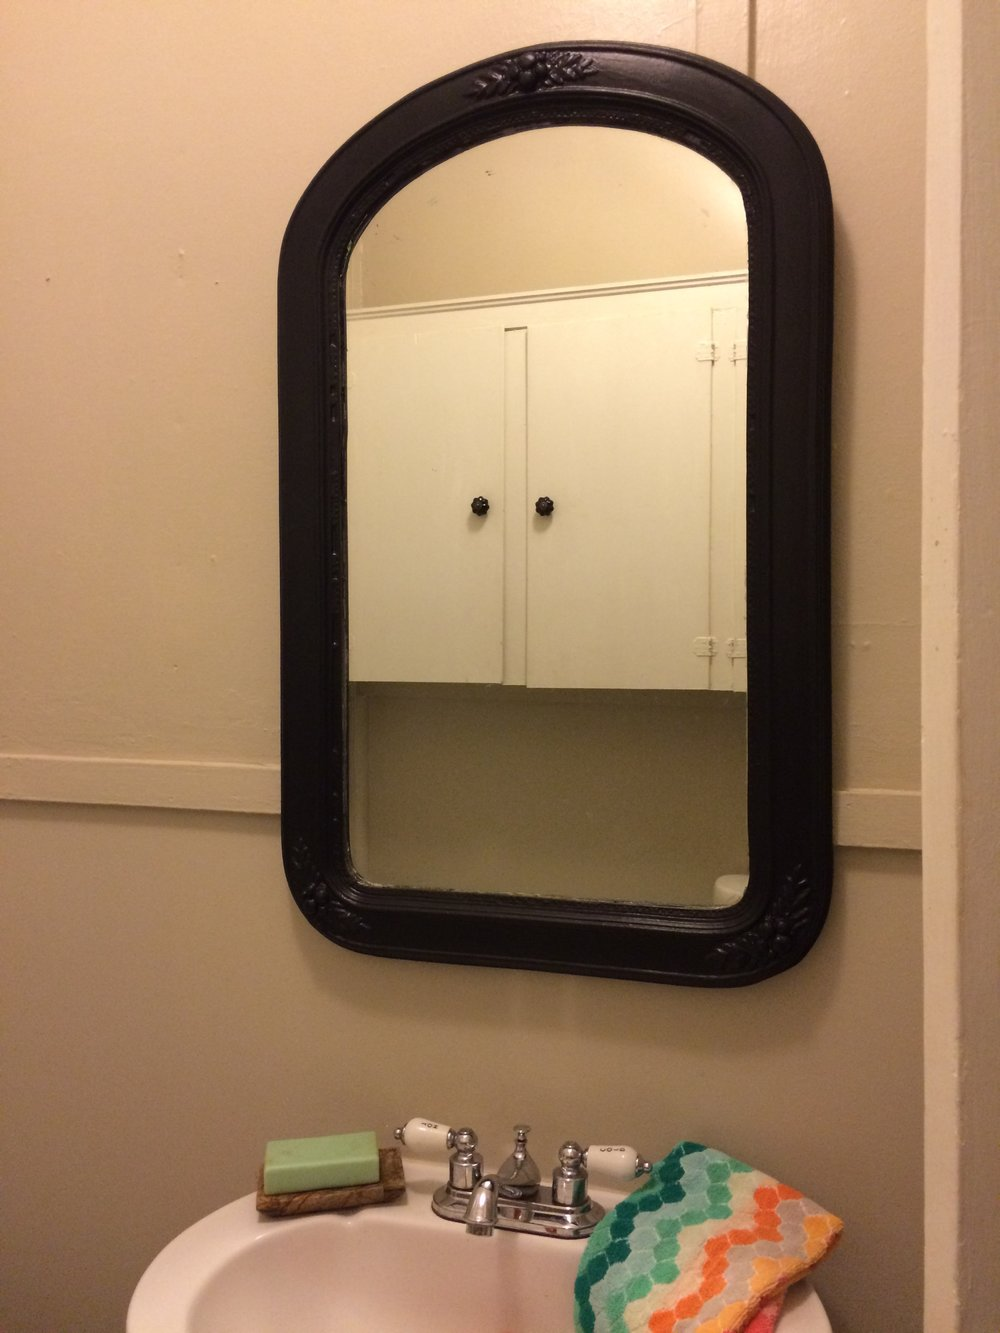 """The black changed the whole look of the mirror and really made the """"hot"""" and """"cold"""" stand out on our faucet!"""